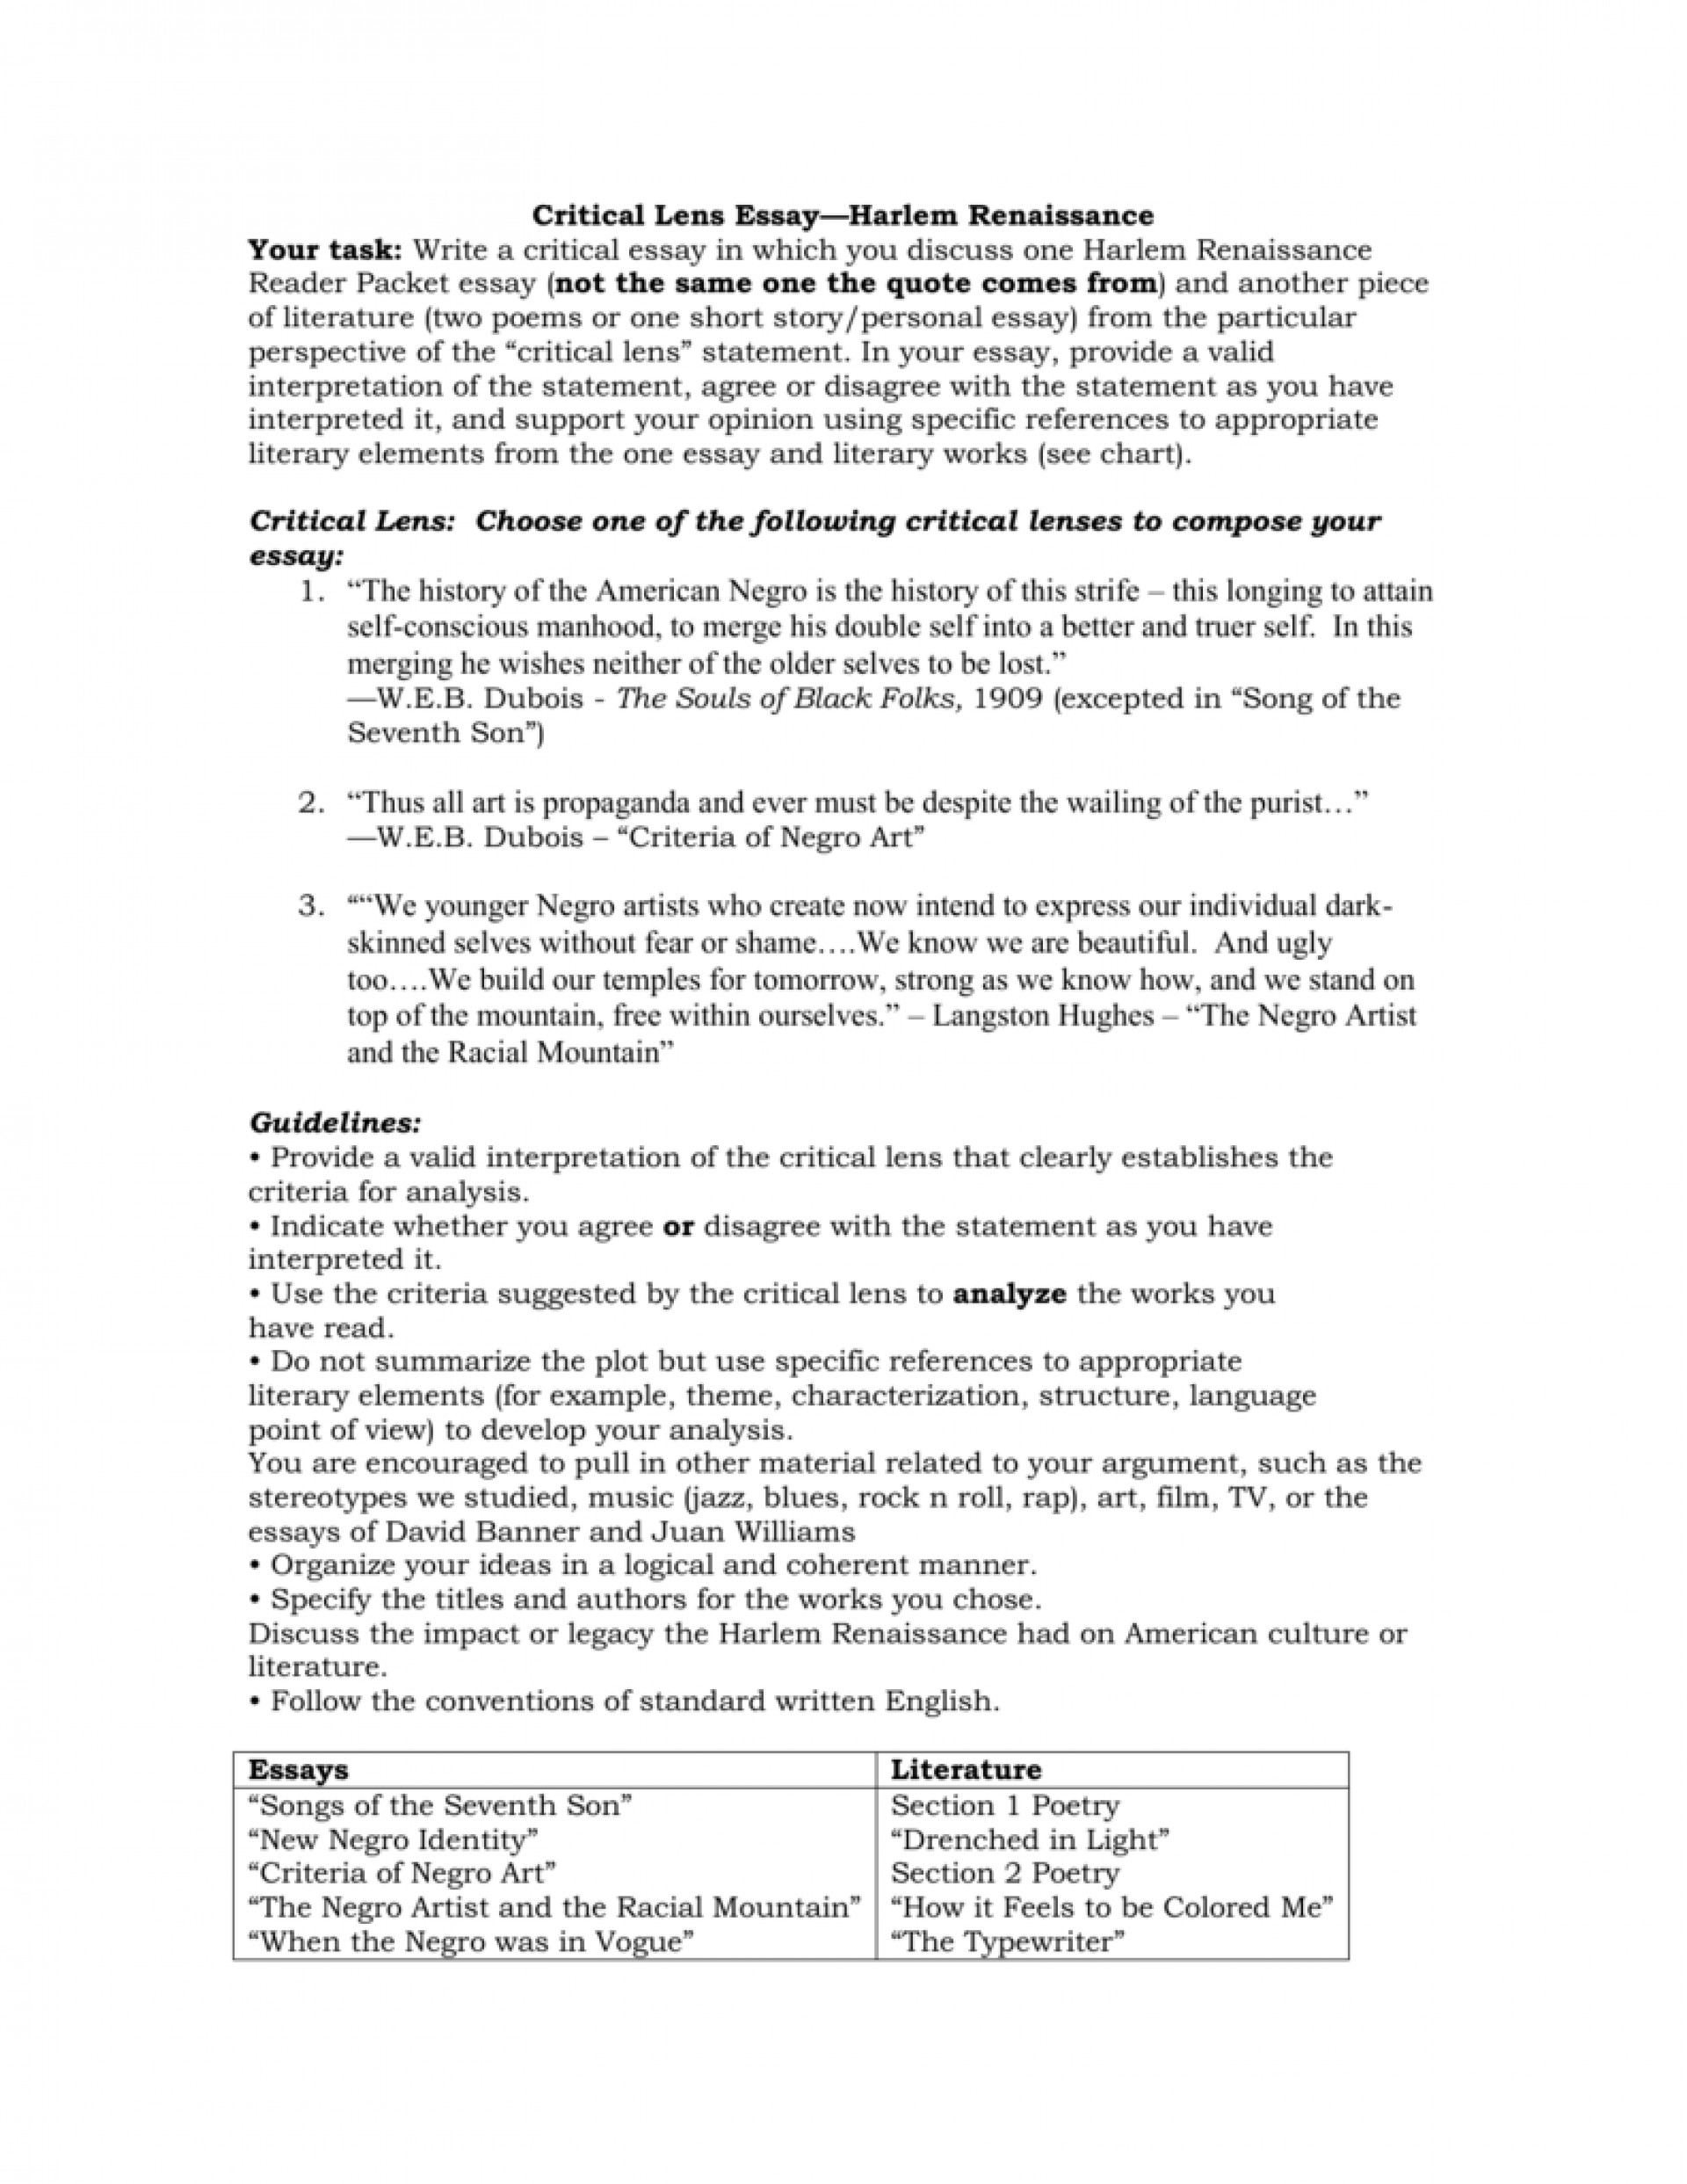 012 007525800 2 Essay Example Critical Best Lens Sample Template English Regents 1920